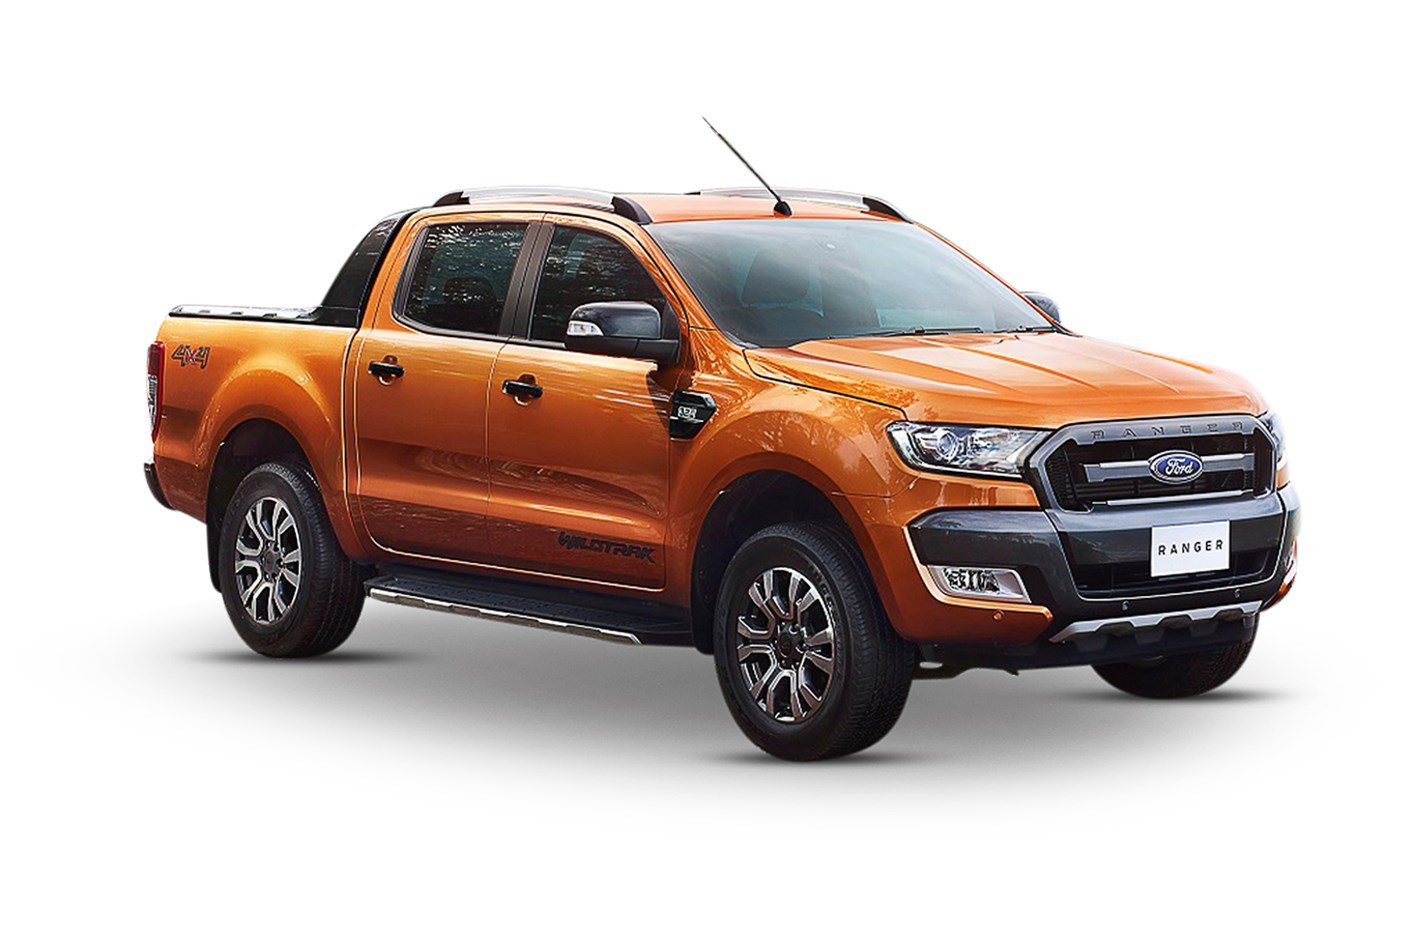 2018 Ford Ranger Wildtrak 32 4x4 32l 5cyl Diesel Turbocharged 2015 Chevy Colorado Oil Filter Location Automatic Ute